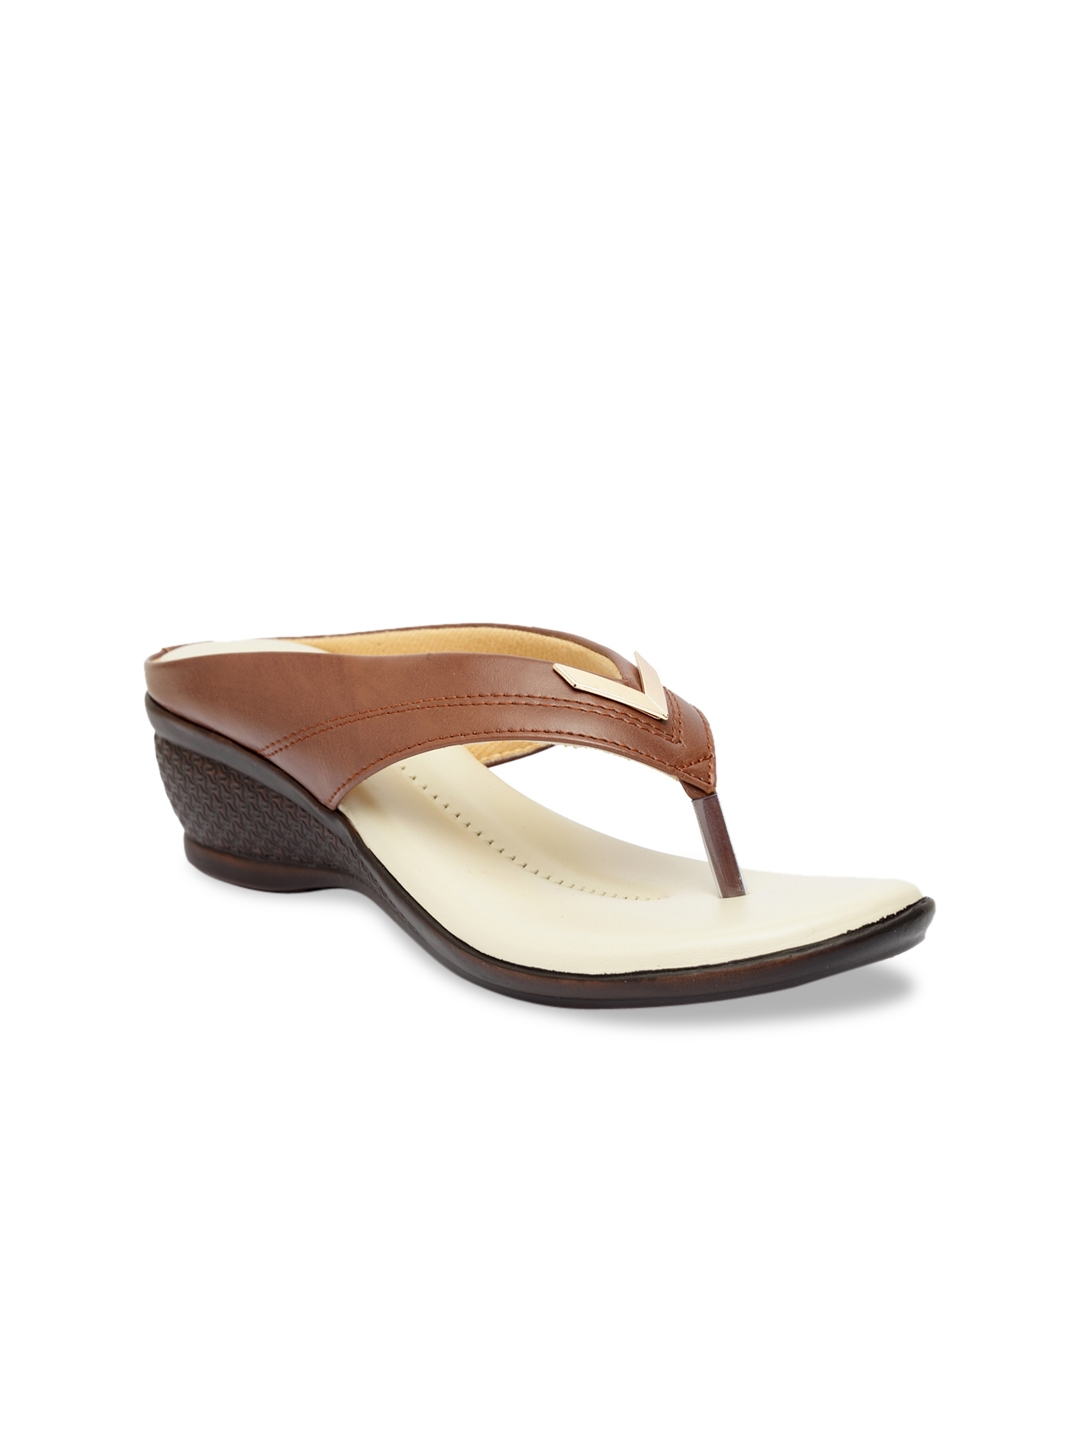 Butterflies Women Brown   Cream Solid Wedge Heels